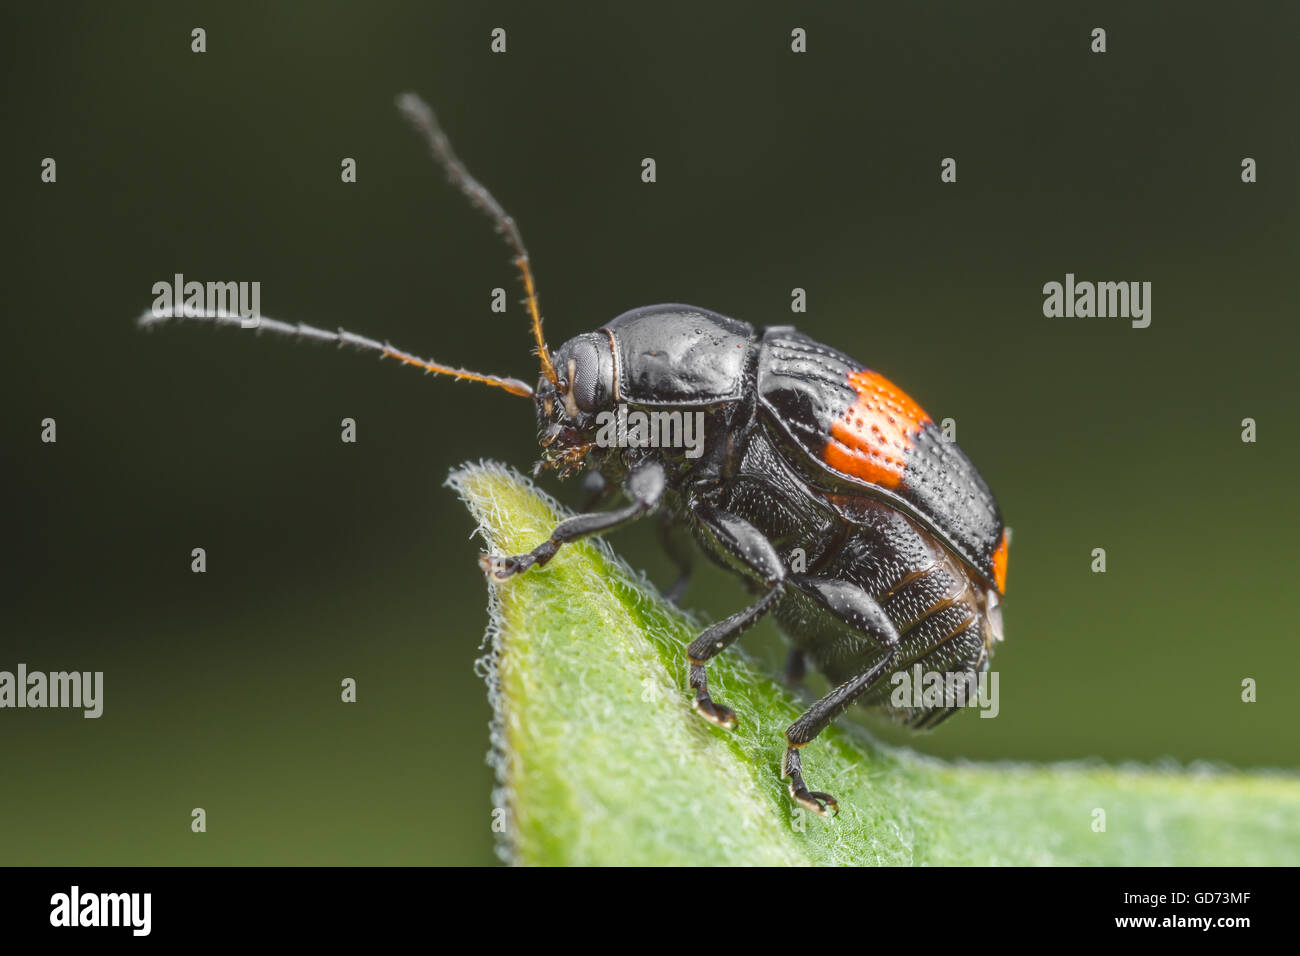 A Case-bearing Leaf Beetle (Bassareus mammifer) stands at the end of a milkweed plant leaf. - Stock Image